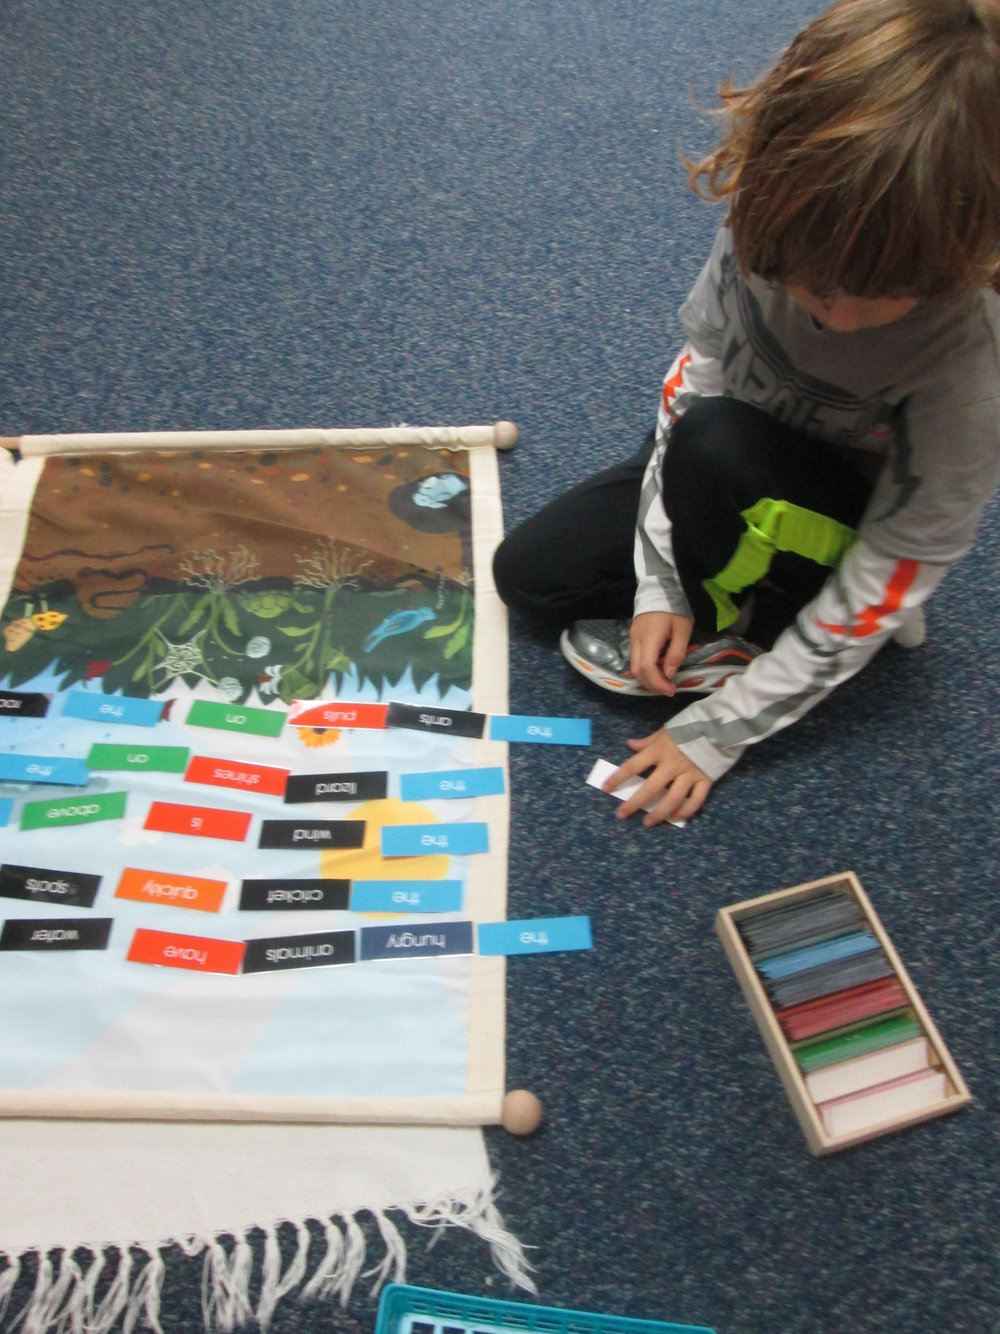 A third grade Lower Elementary East student worked on an abstract and complex Language work.  Using the Biome Mat, the student is required to create sentences using tickets and then compose the sentence and symbolize it.